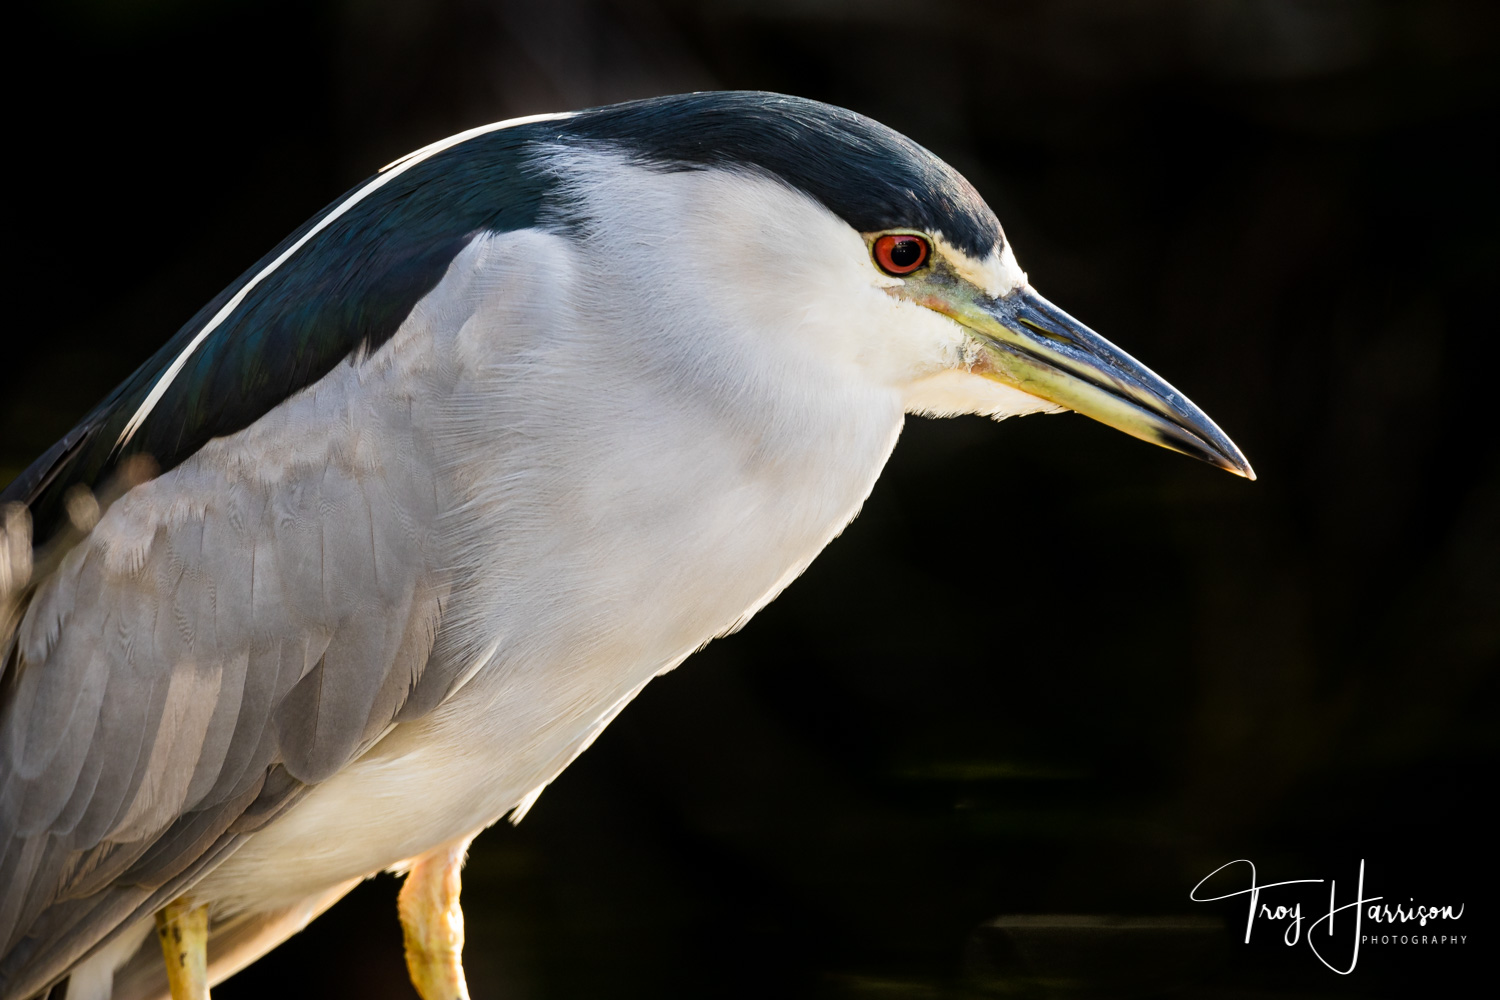 1 - Night Heron, Everglades, Nov. 2018, img 517.jpg